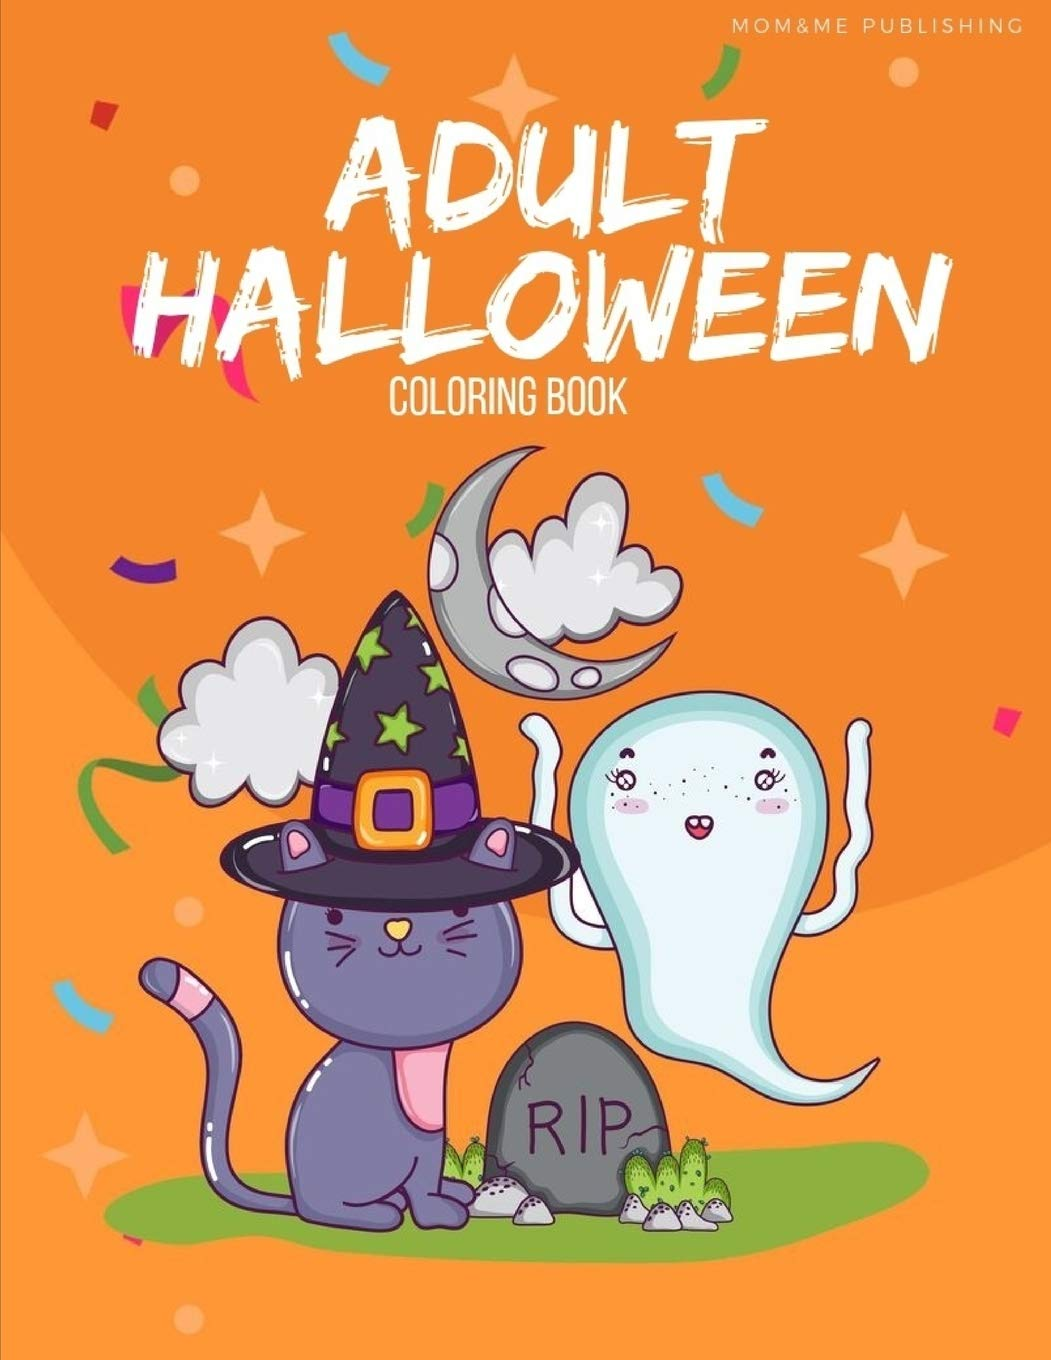 The Elephant Show Halloween Coloring Pages | Lego Vampire ... | 1360x1051